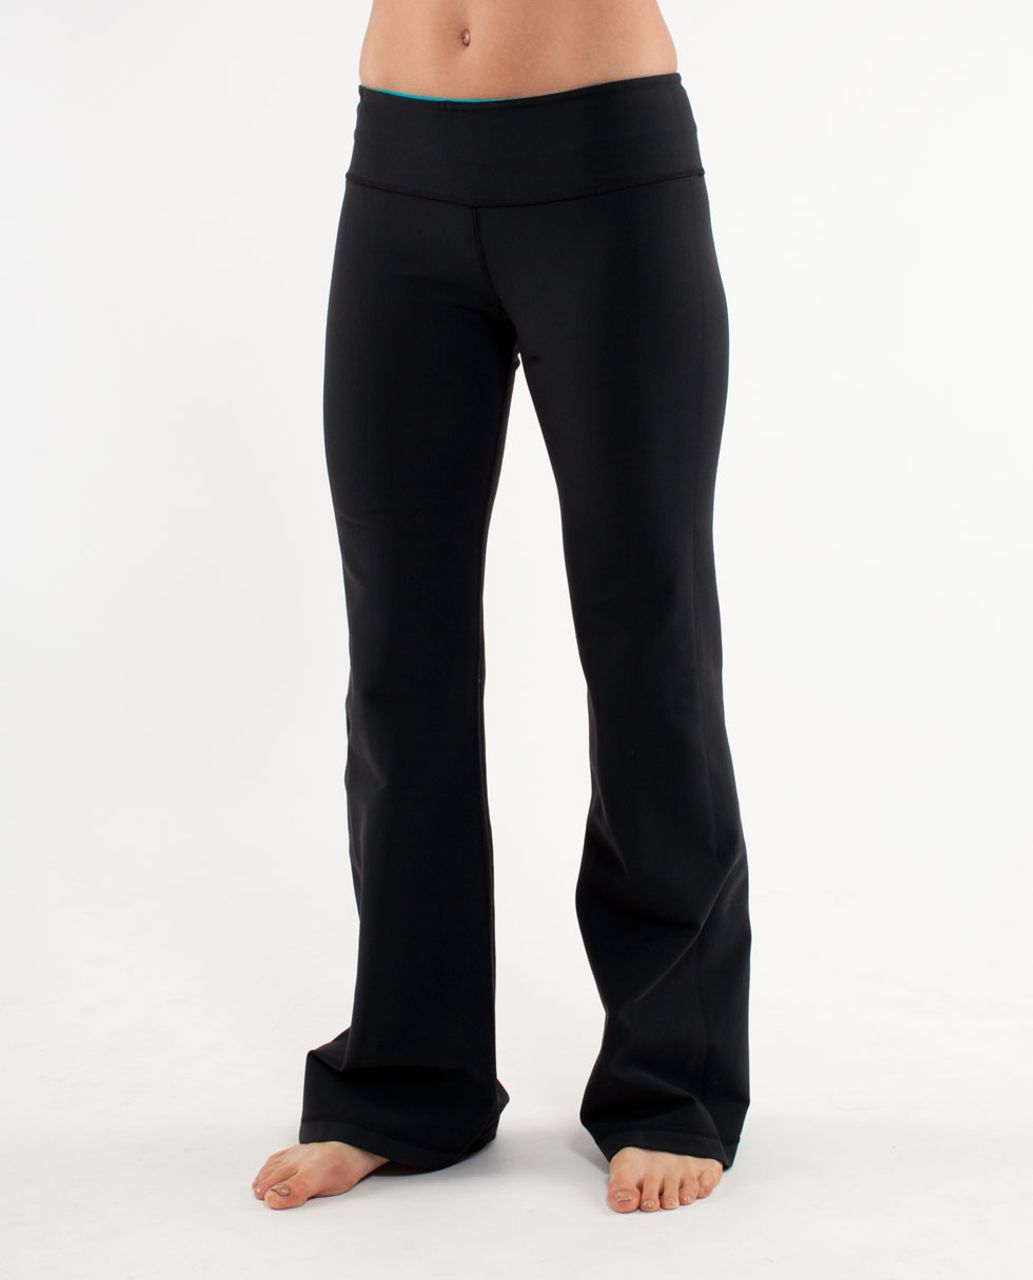 Lululemon Groove Pant (Regular) - Black /  Oasis /  River Rock